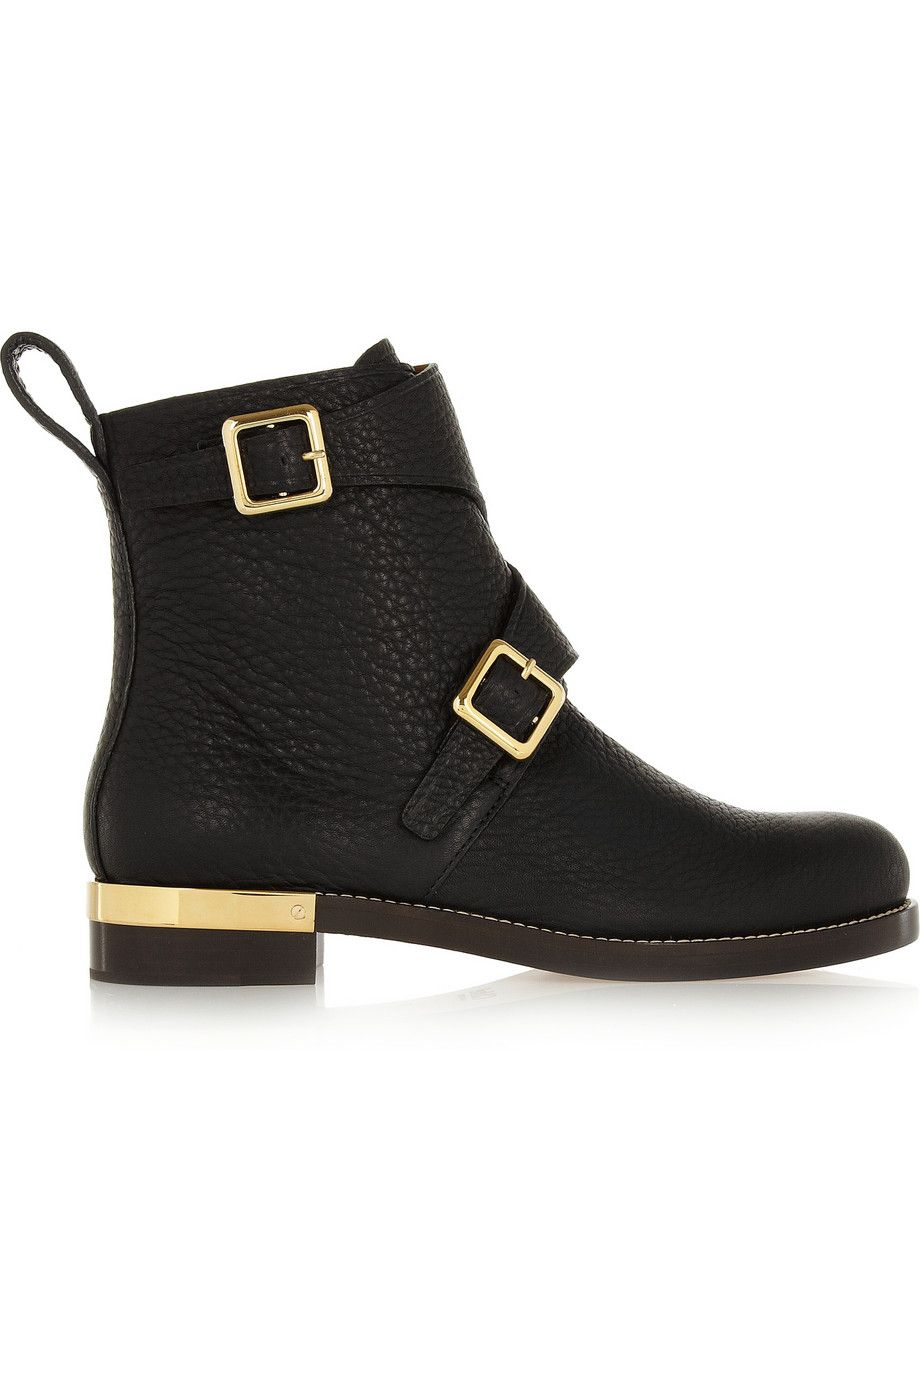 Chloé|Textured-leather ankle boots|NET-A-PORTER.COM